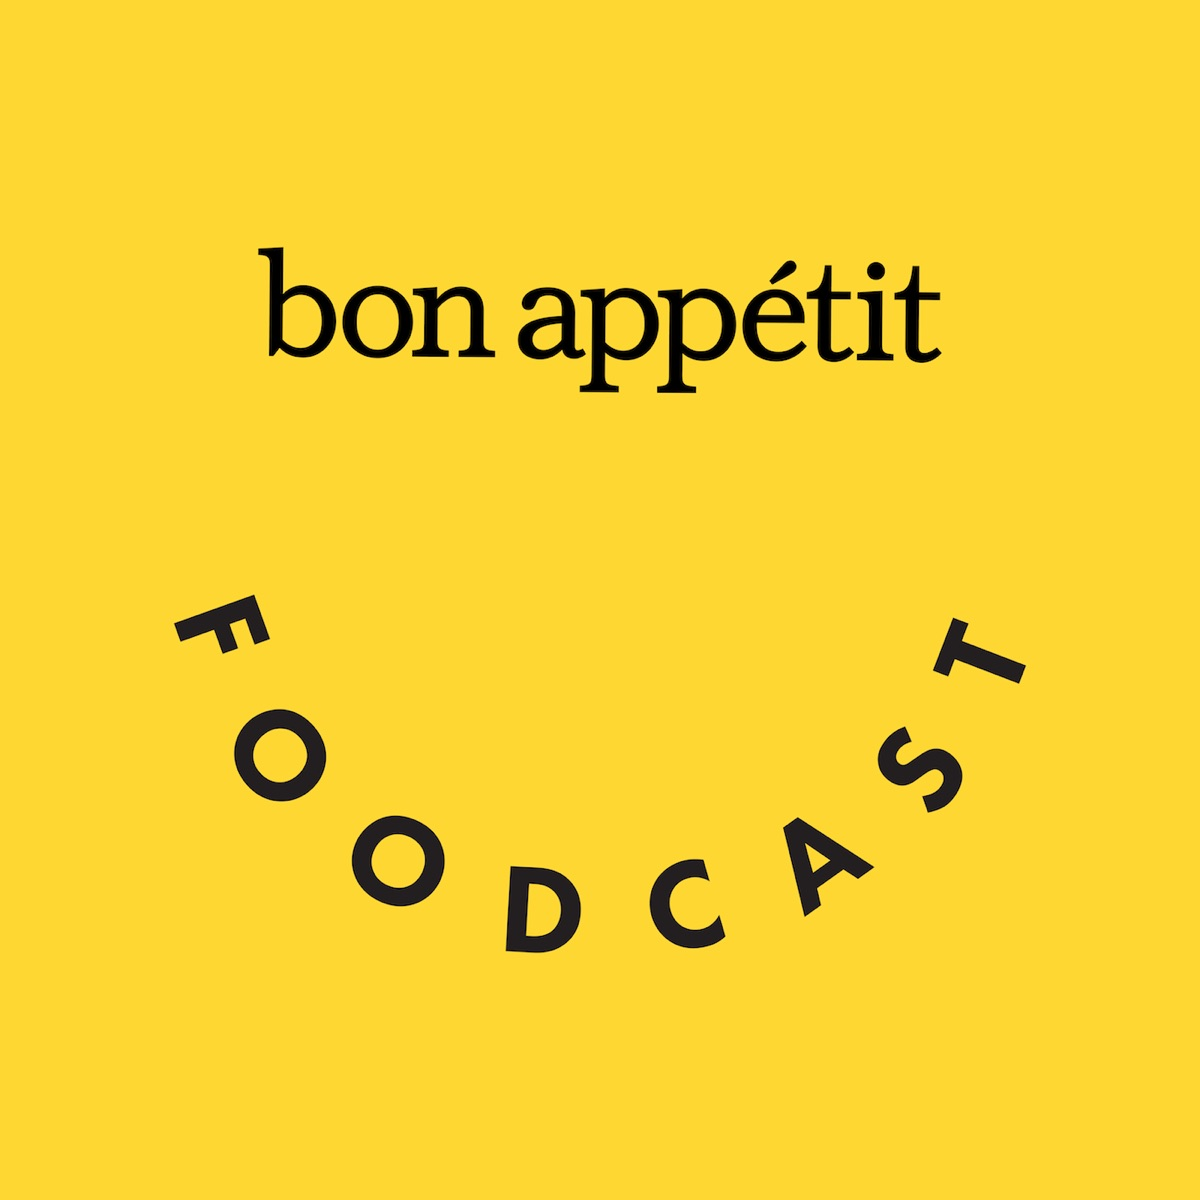 Episode 273: A Whole Lot of Cooking